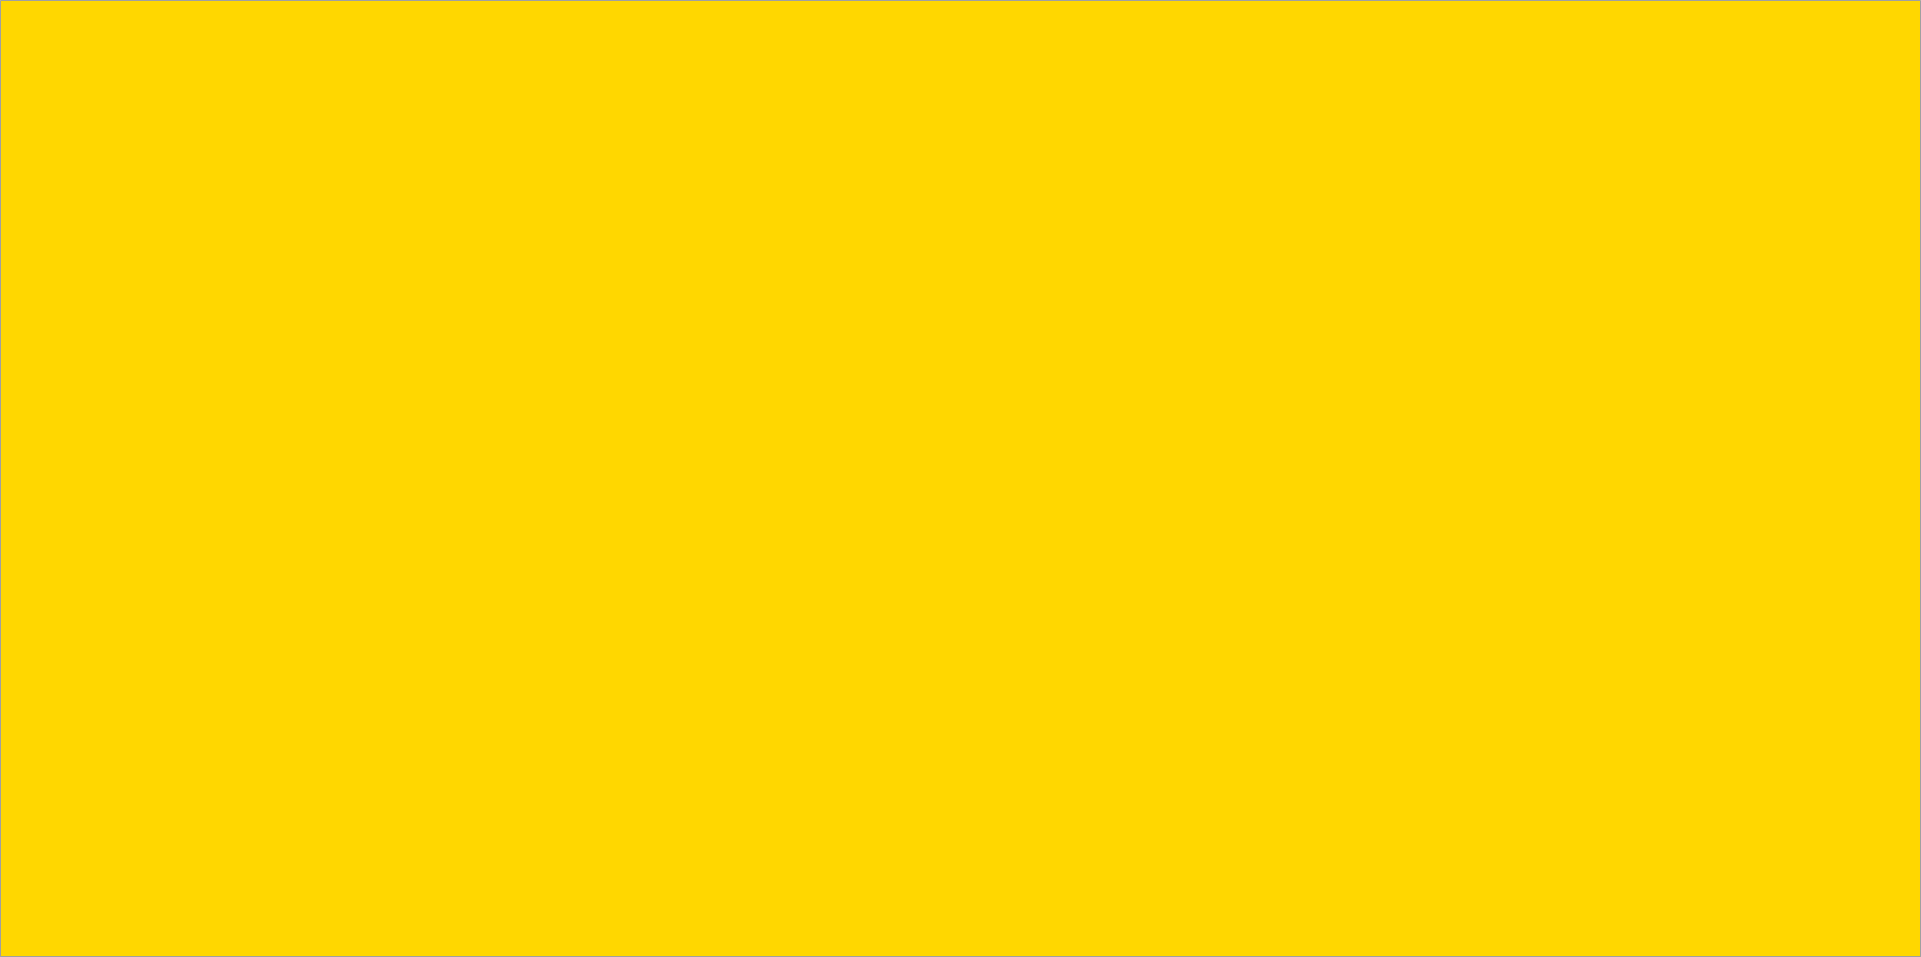 yellow website shape